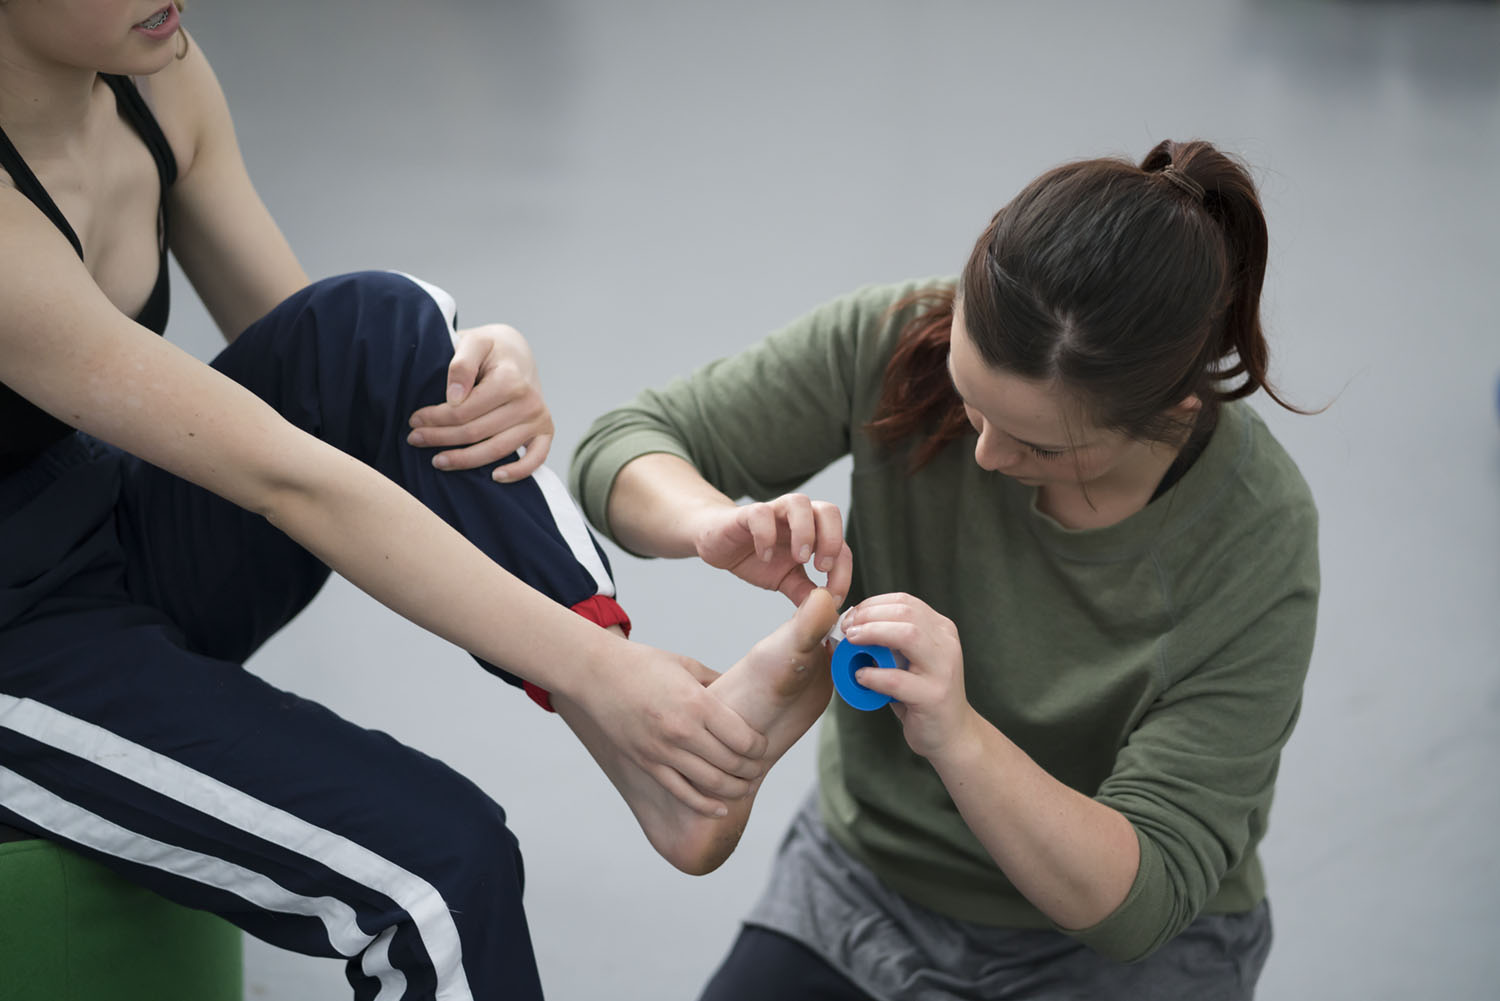 Trainee Imogen helps a dancer patch up before going on stage